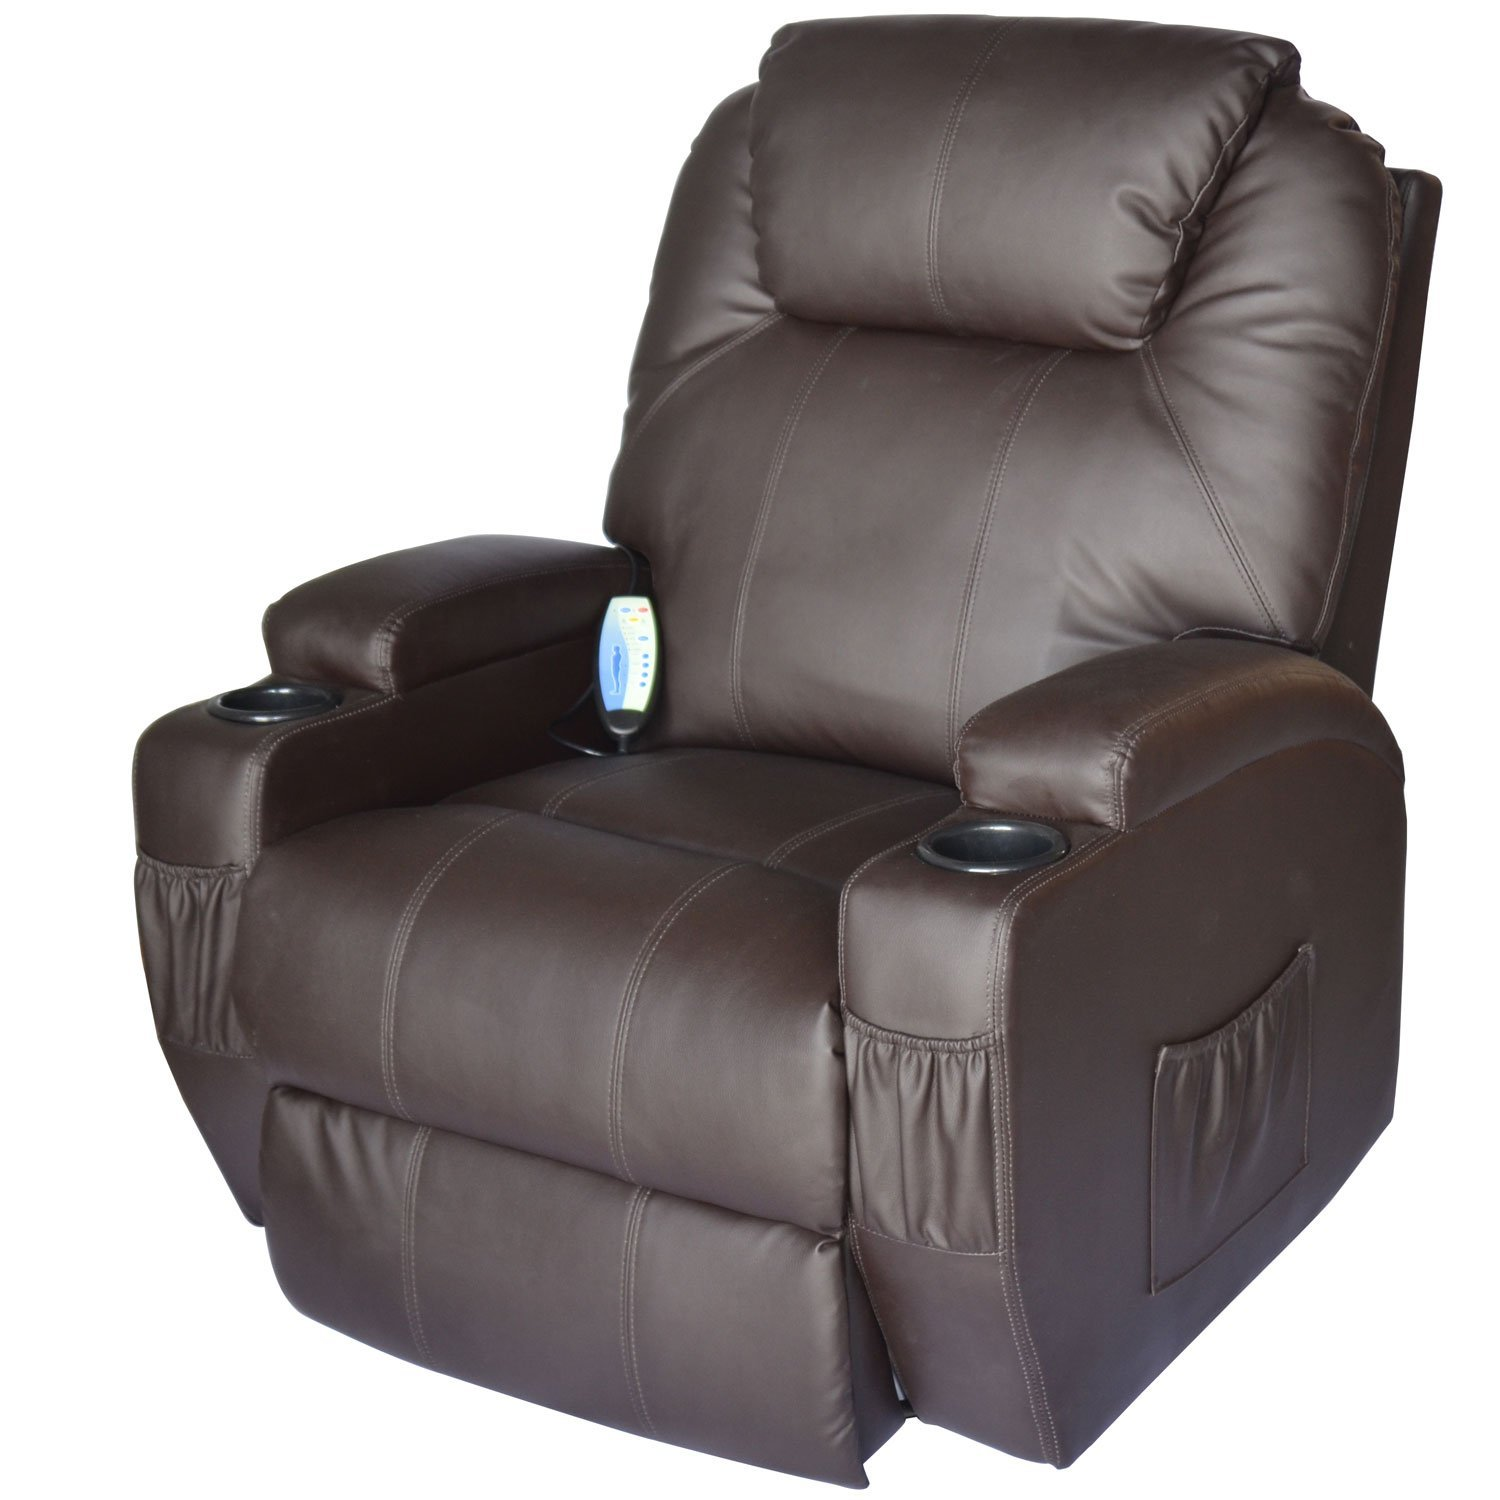 Finding The Best Rocker Recliner Chair